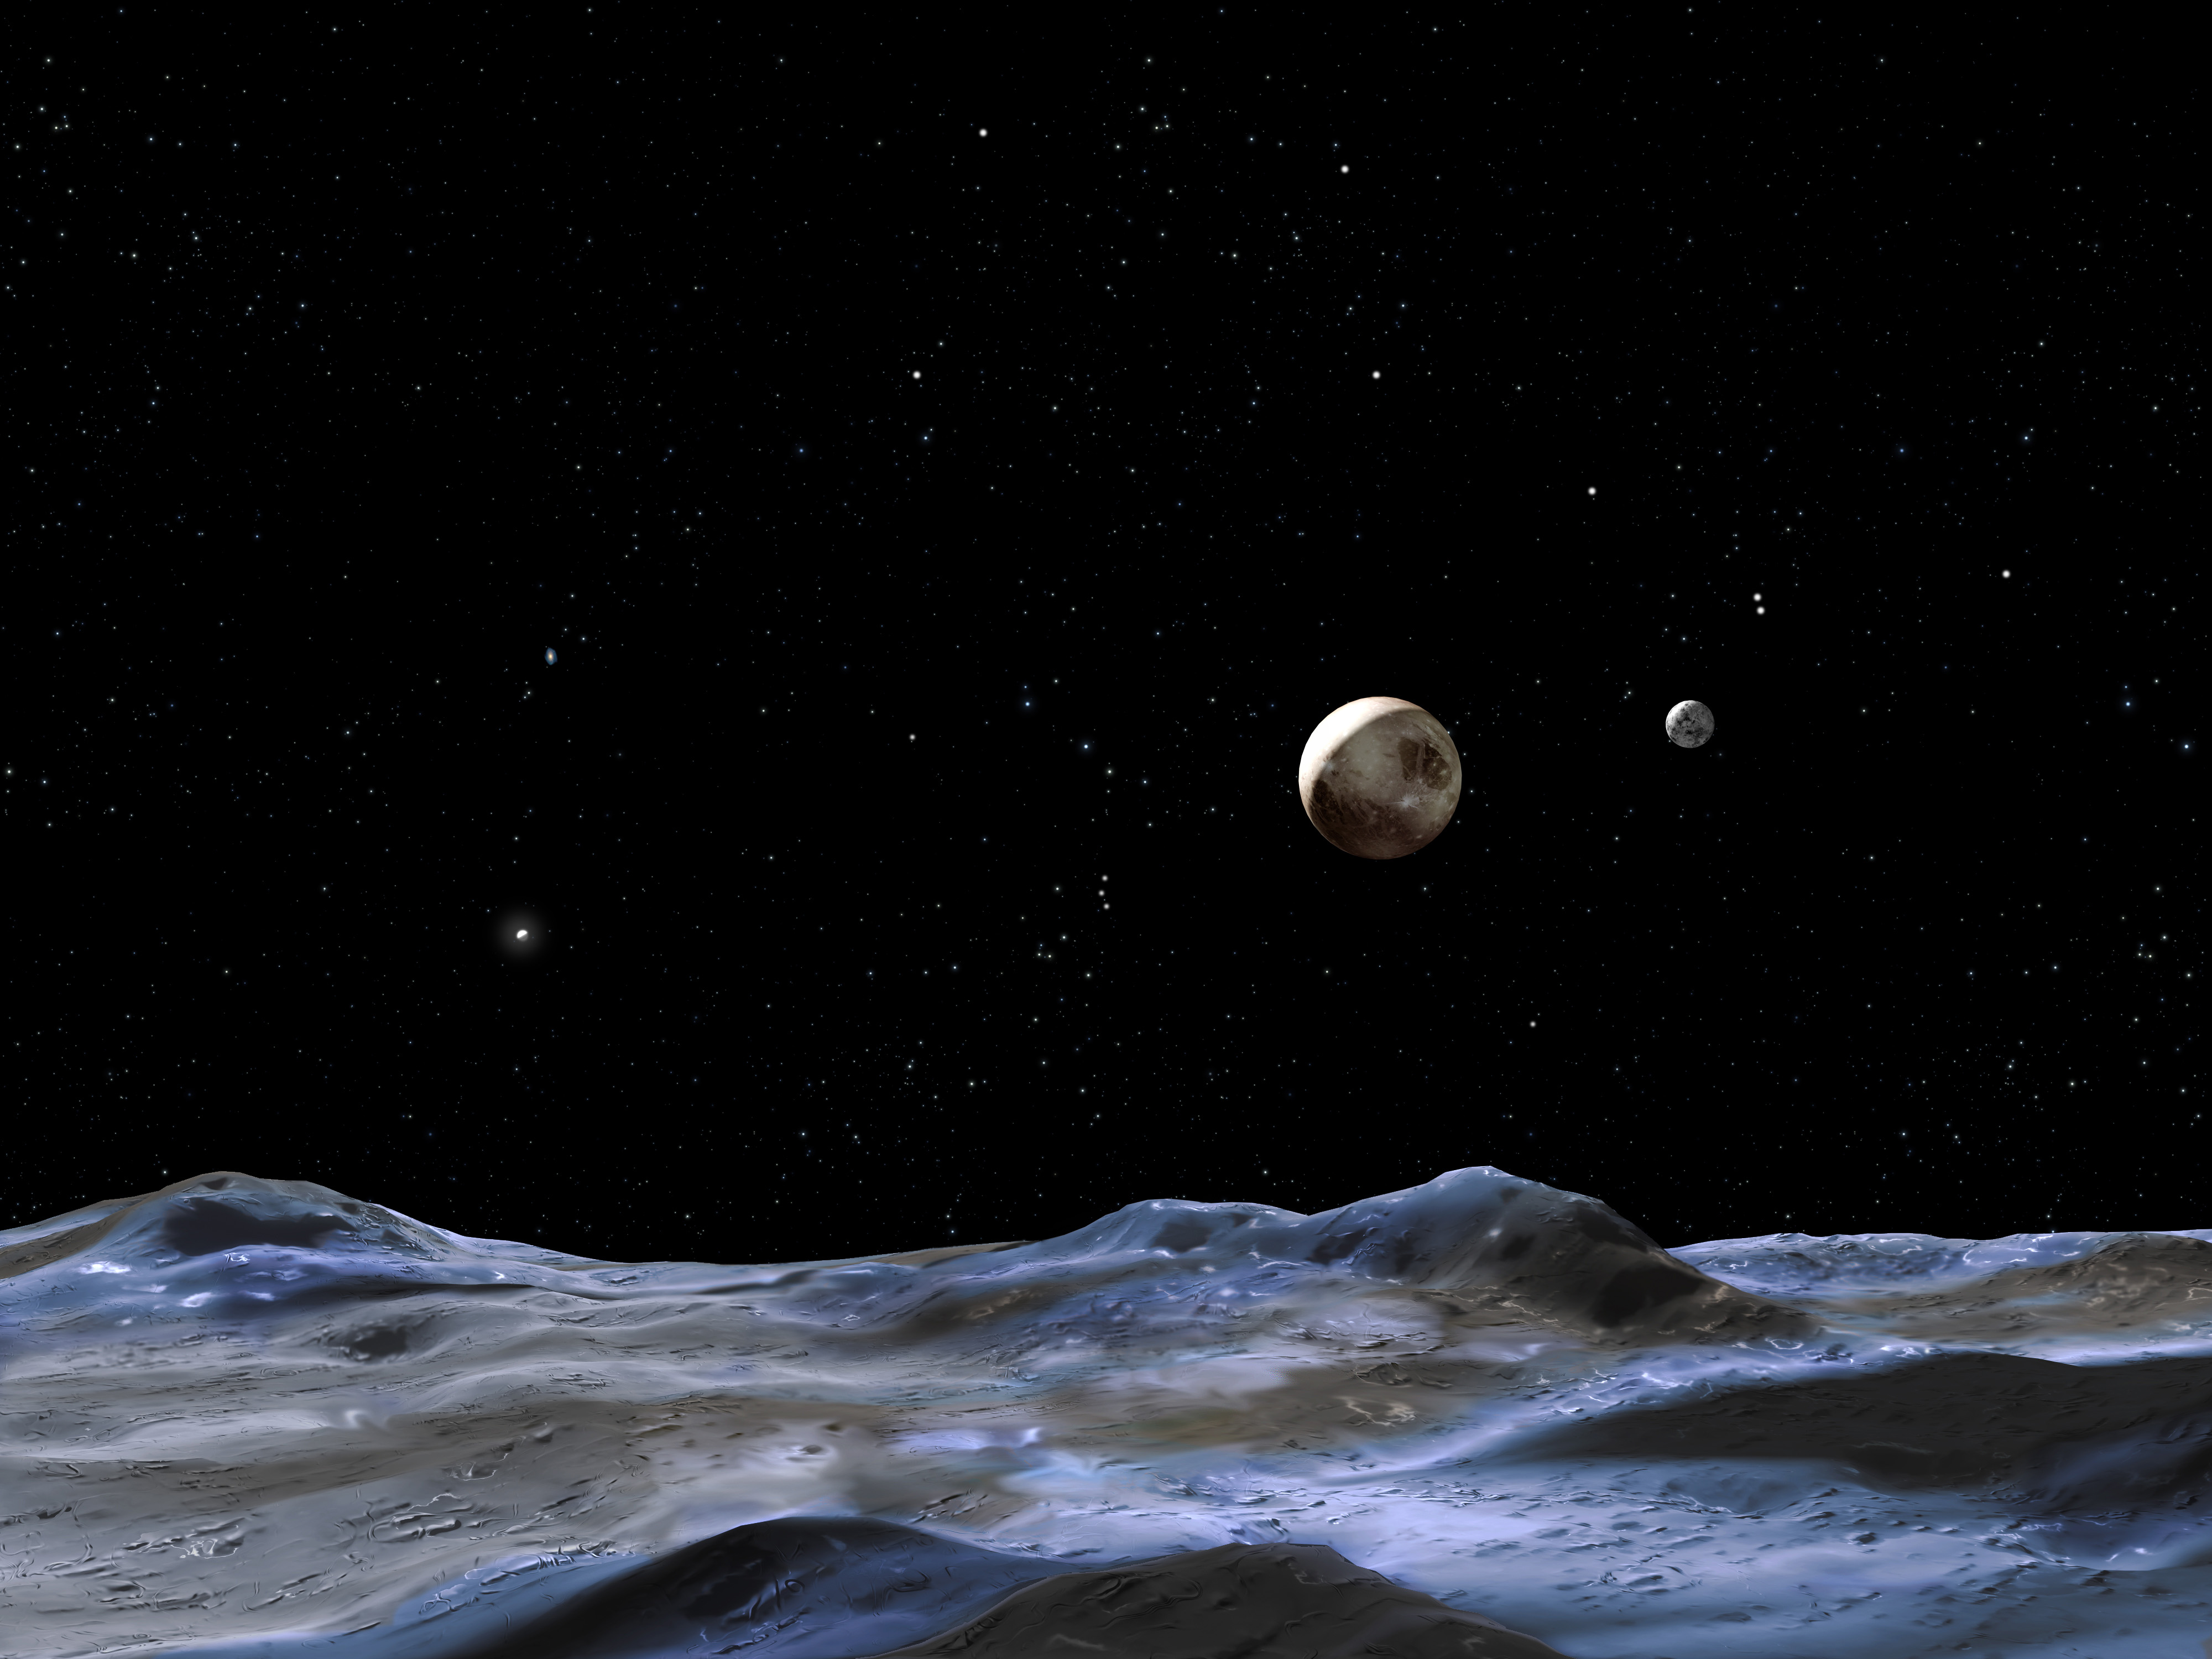 ... simulation), NASA (Pluto and Charon). Effects and editing: myself